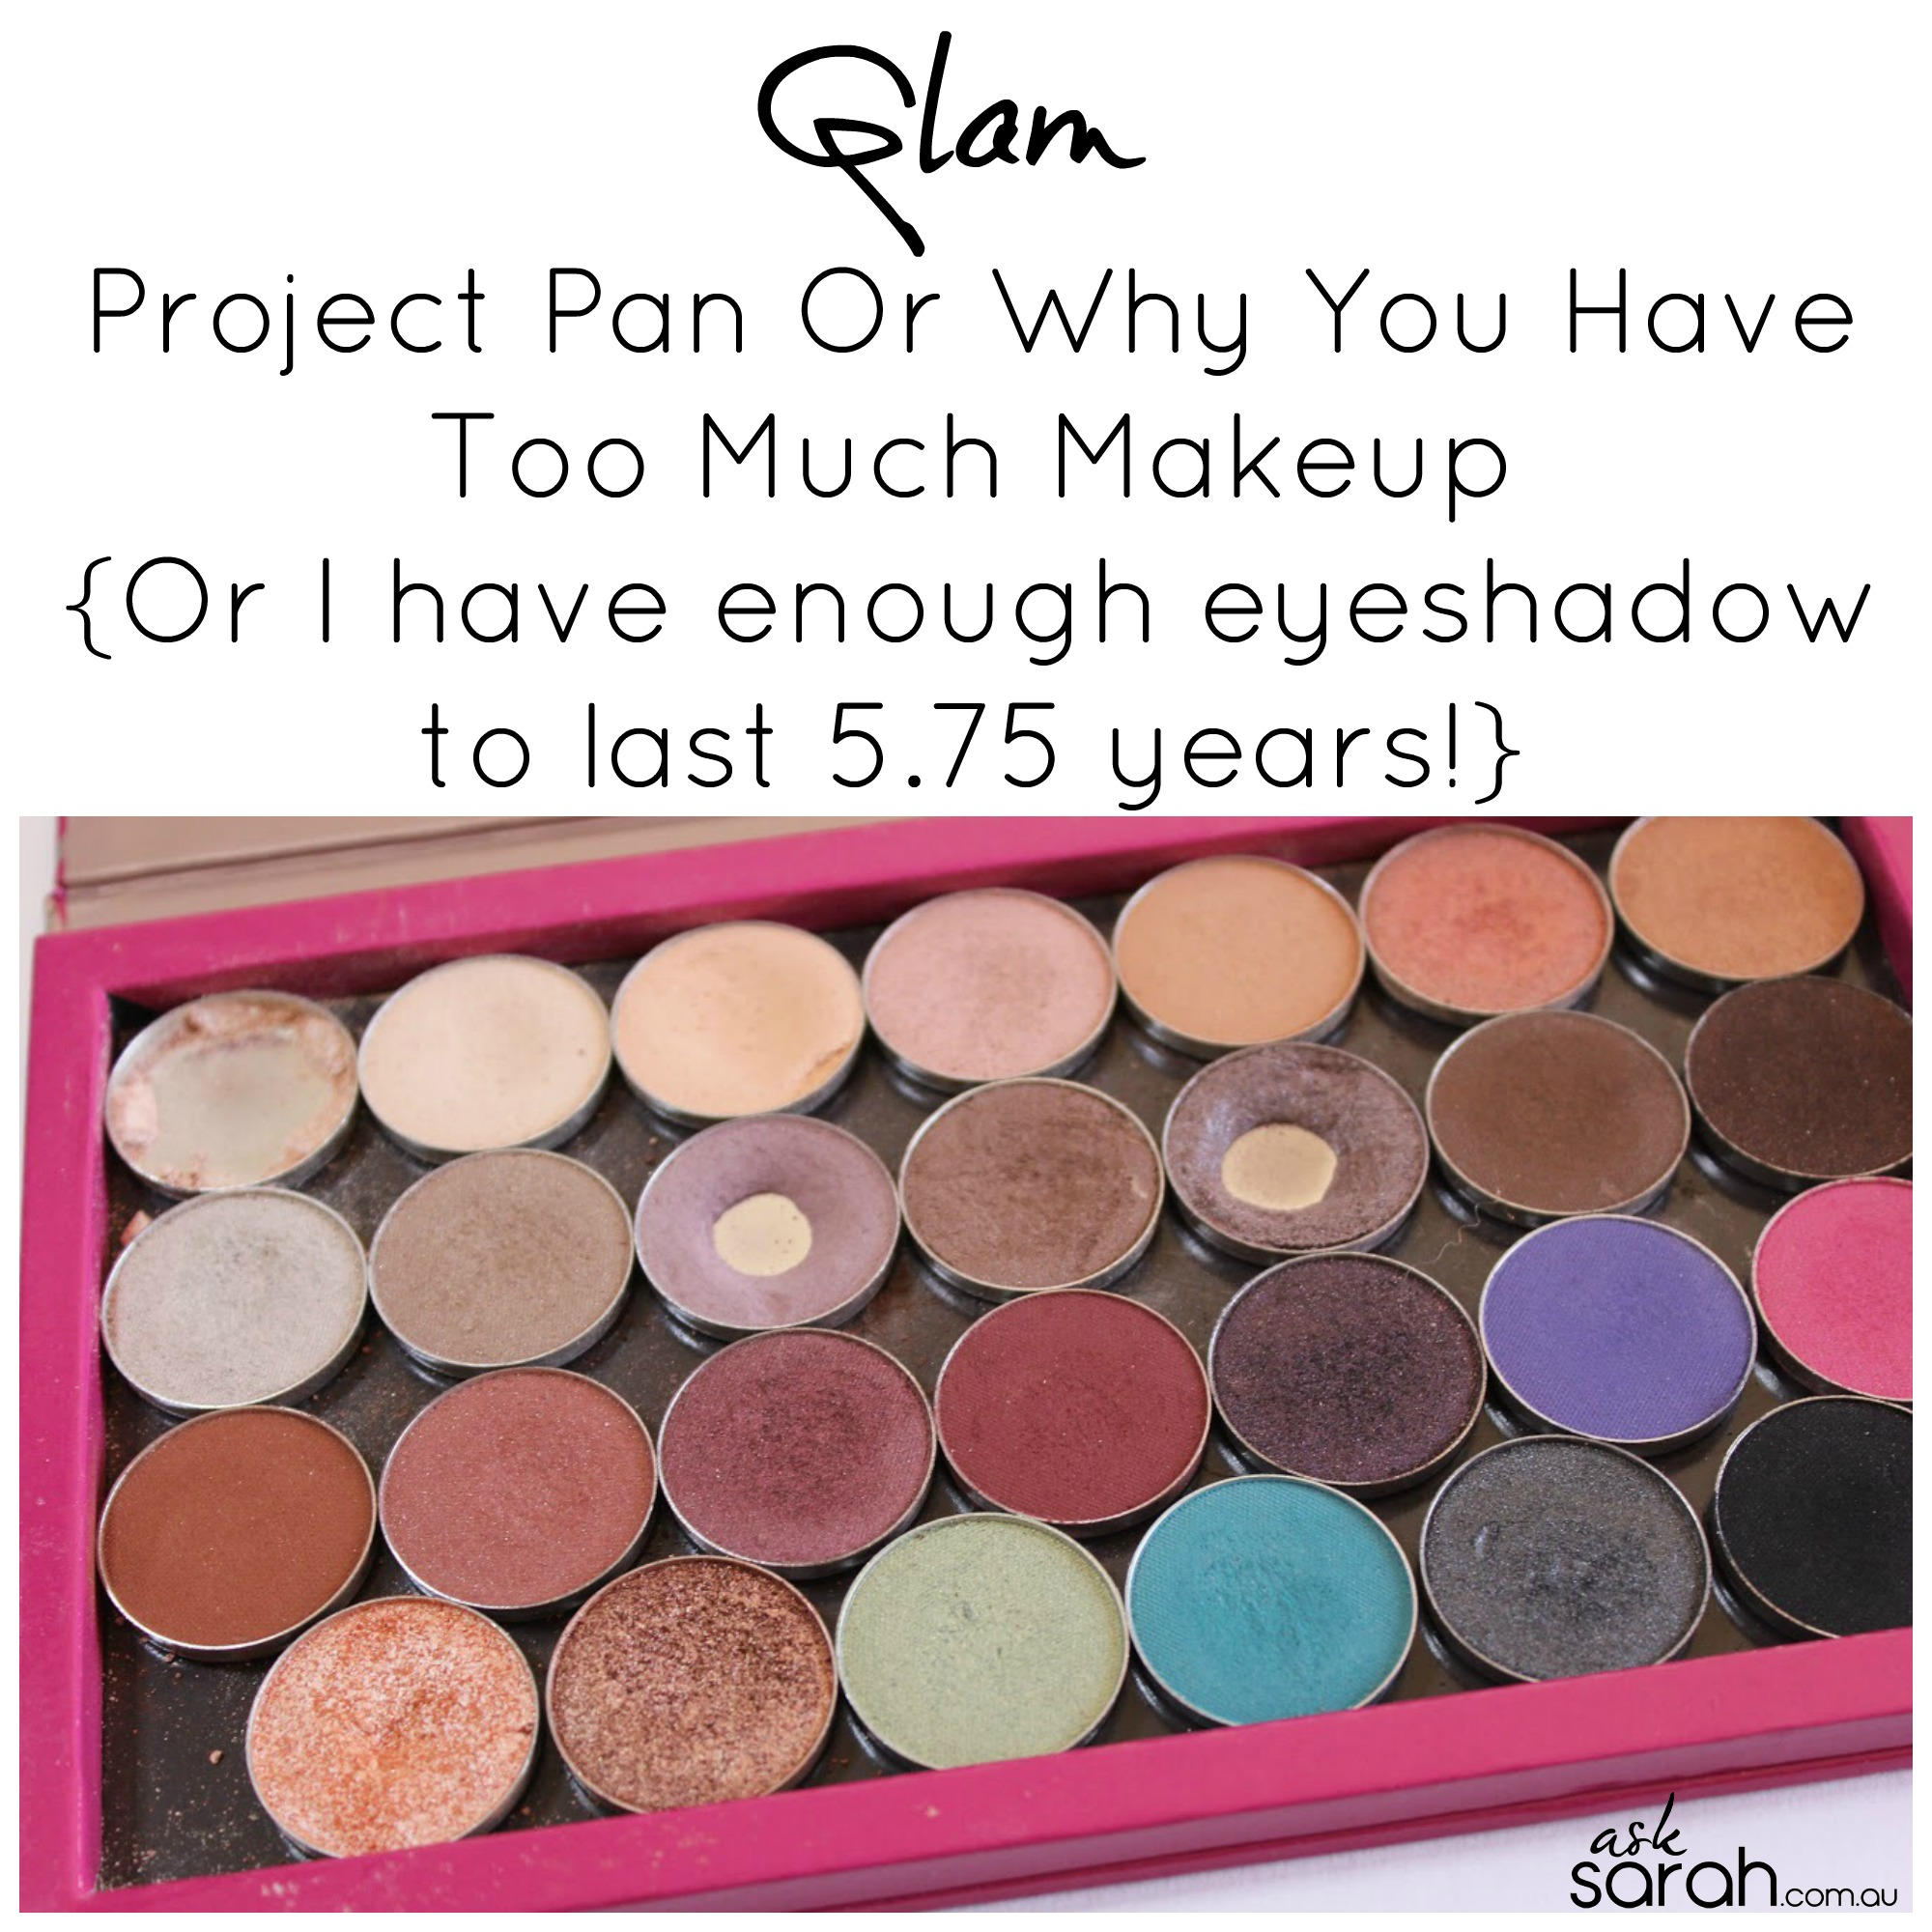 Glam: Project Pan Or Why You Have Too Much Makeup {Or I have enough eyeshadow to last 5.75 years!}